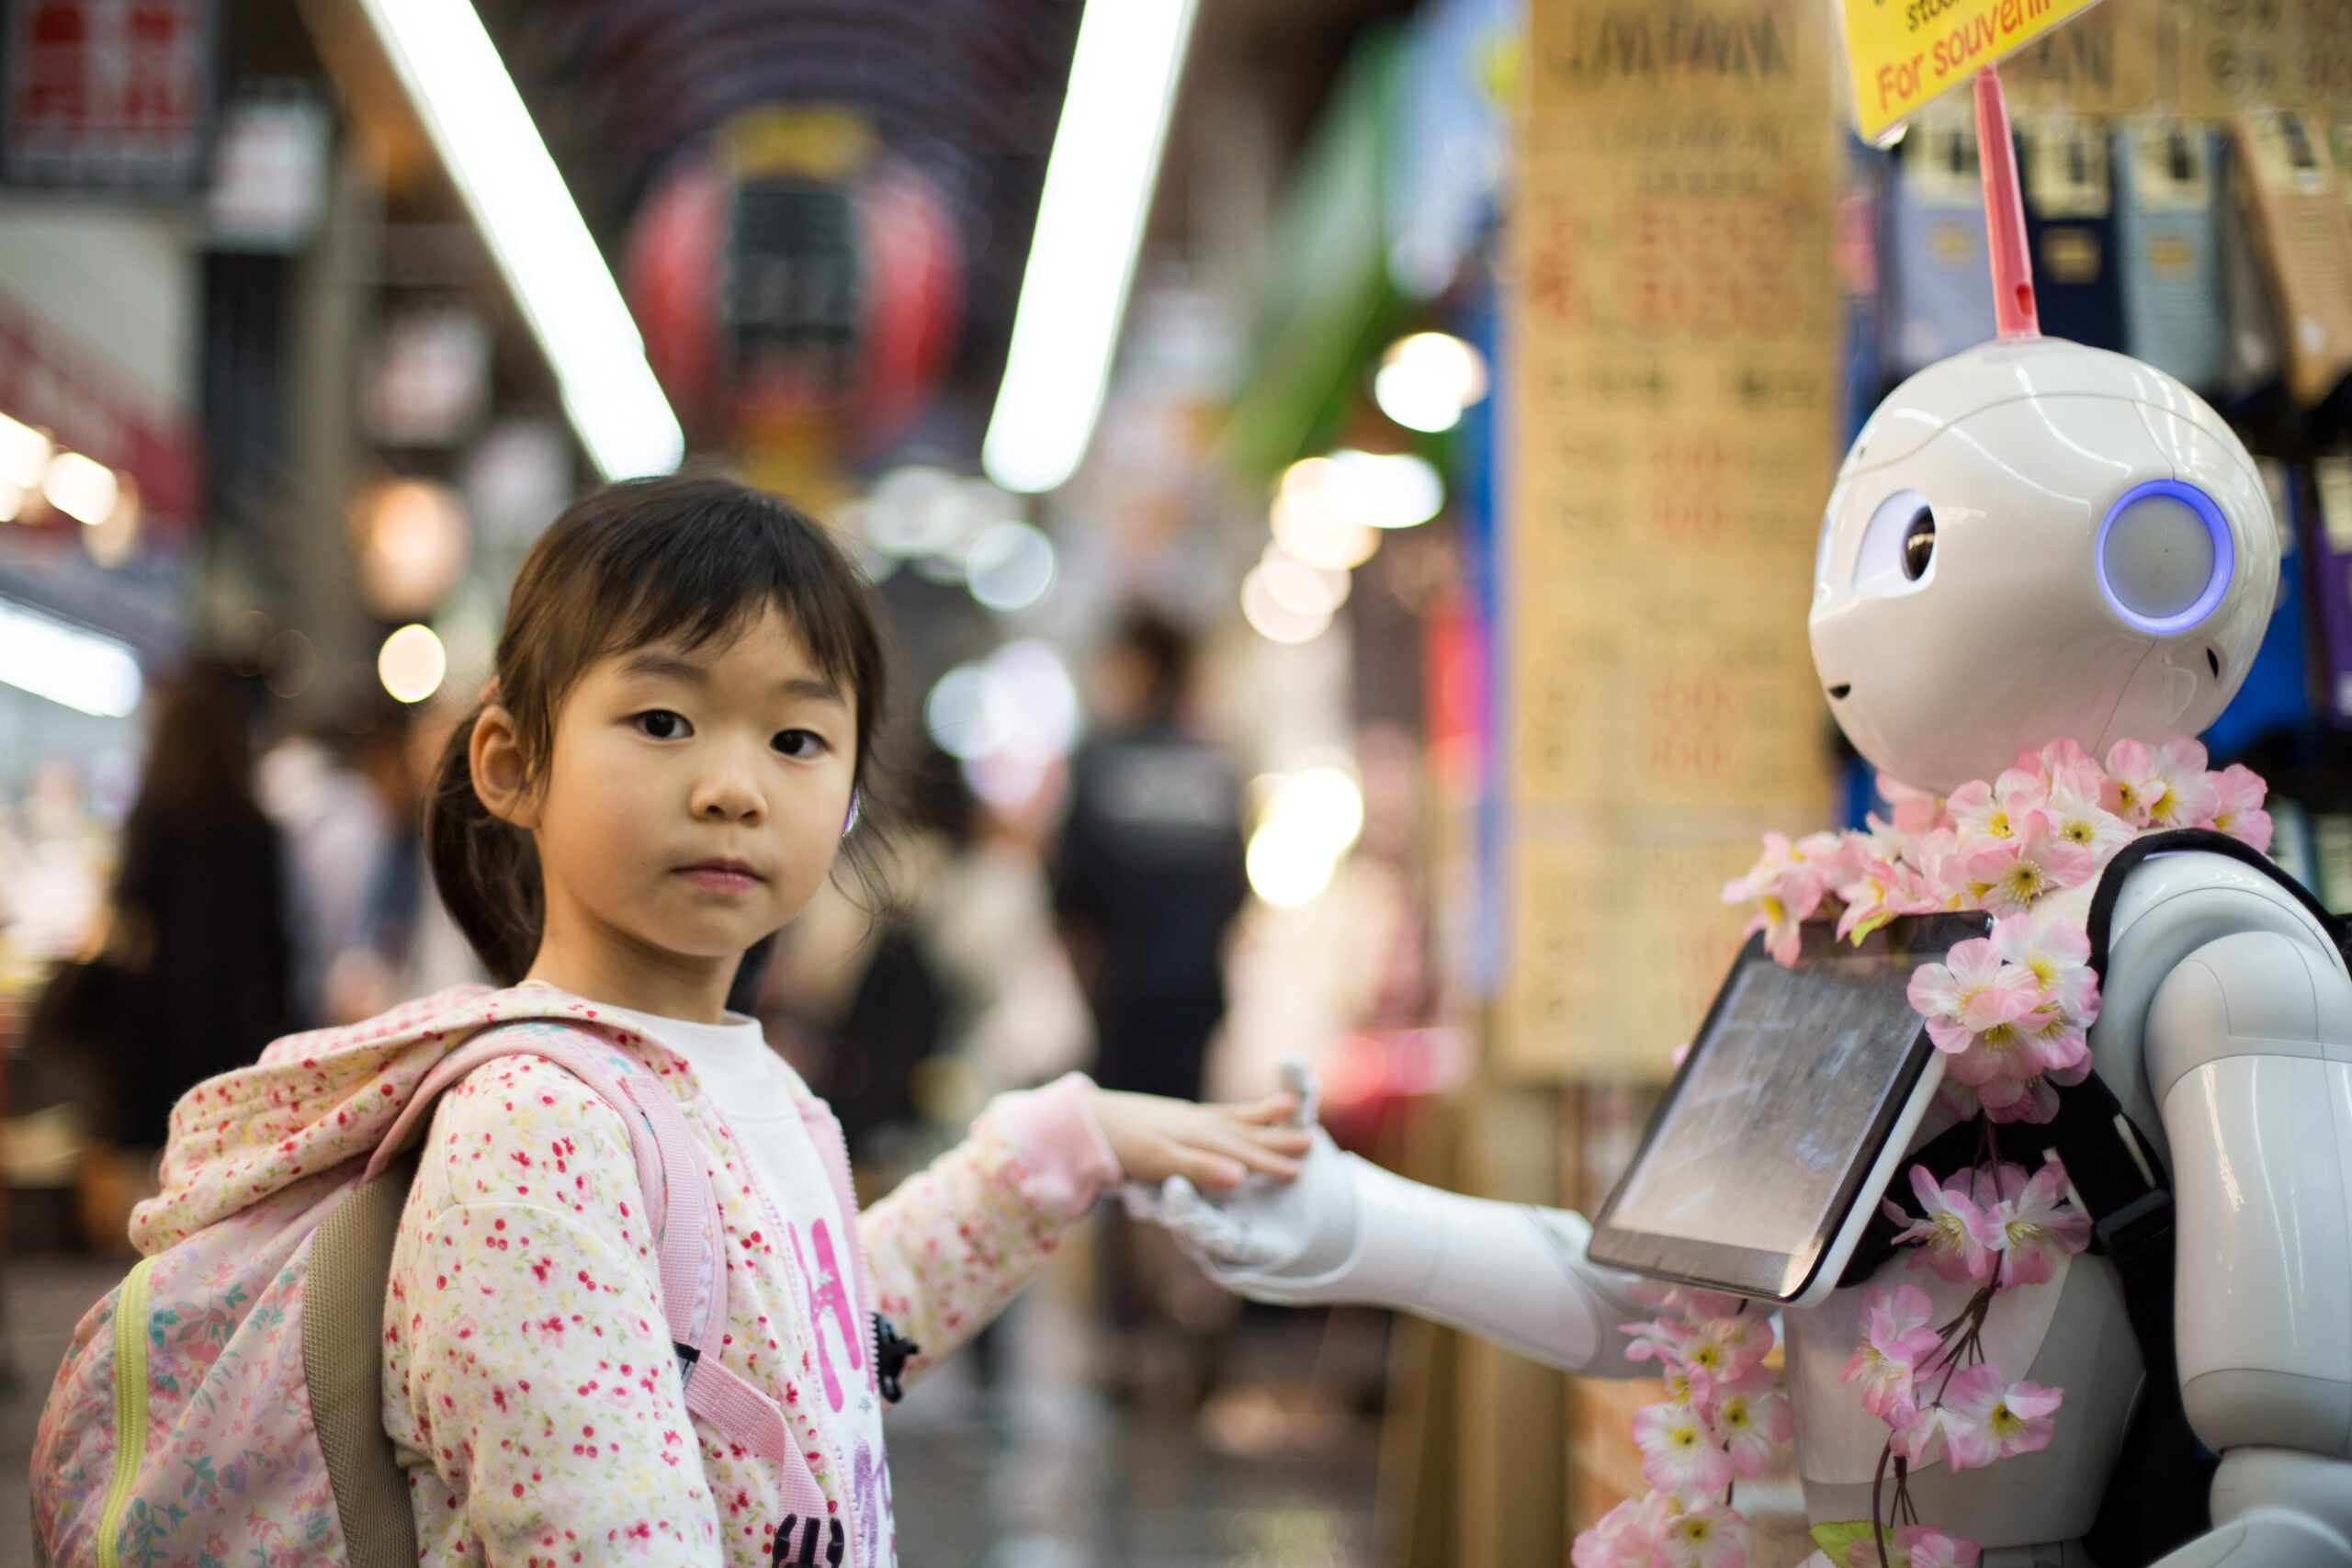 Little girl with robot